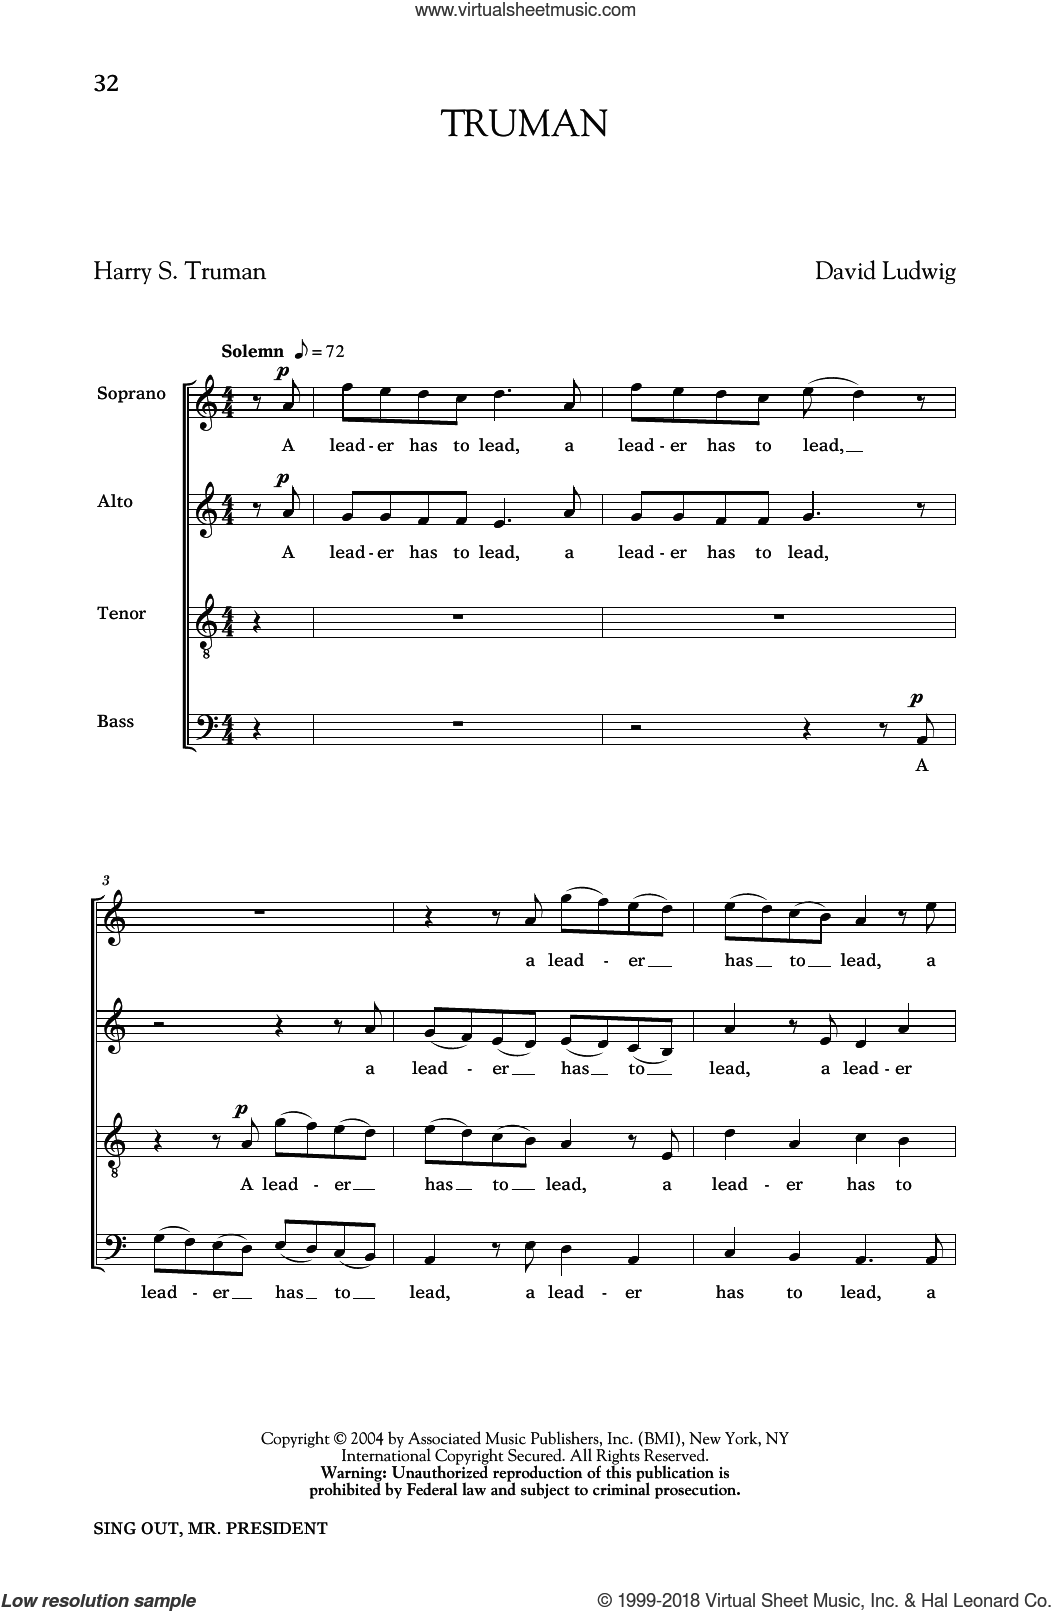 Truman sheet music for choir and piano by Harry Truman